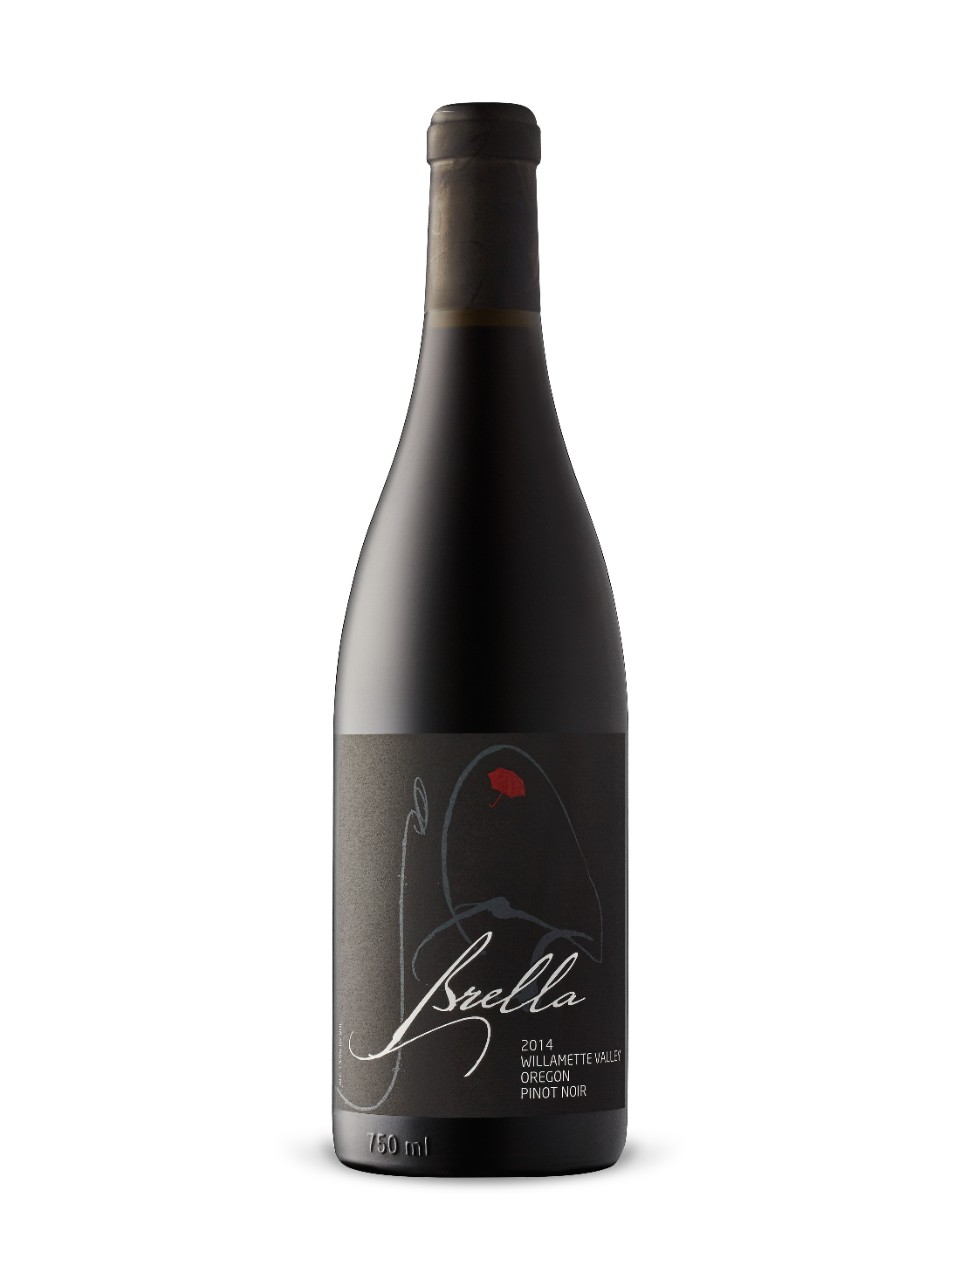 Image for Brella Pinot Noir 2014 from LCBO